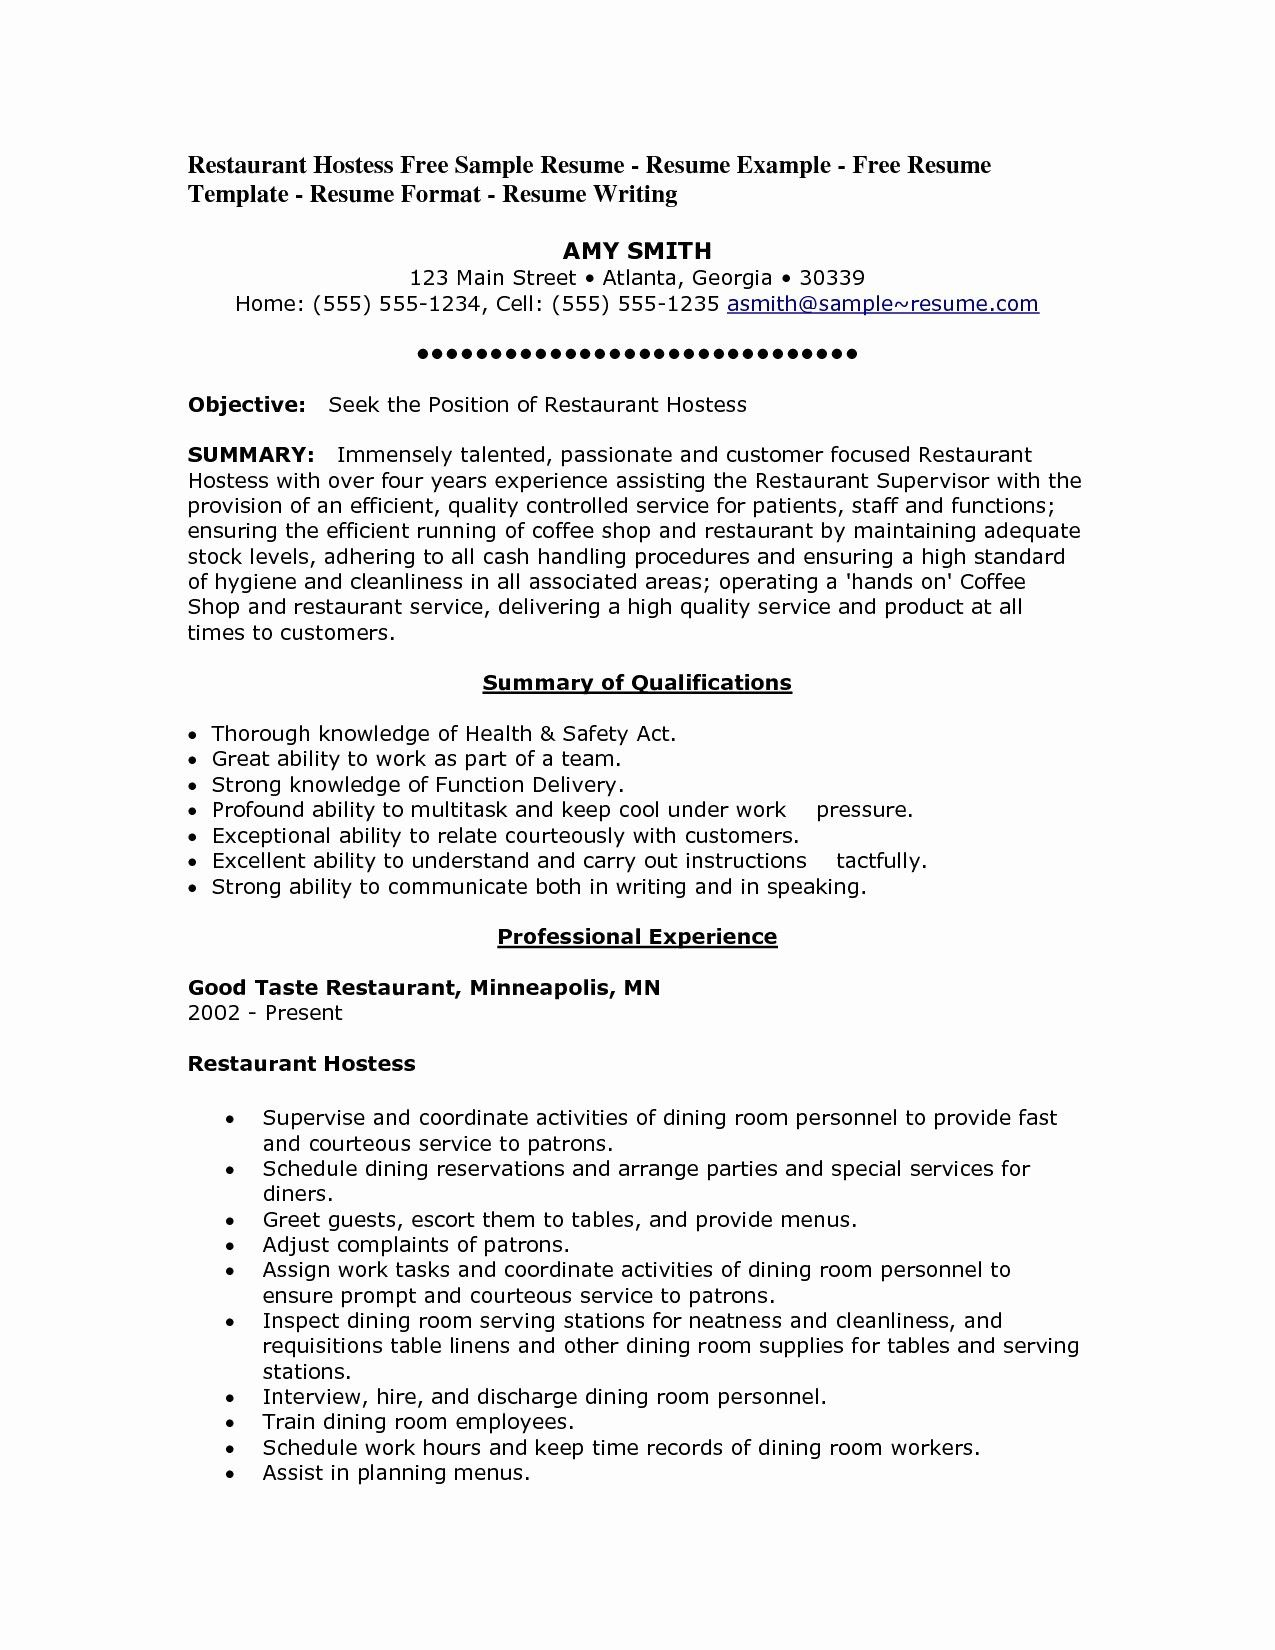 resume objective for restaurant job